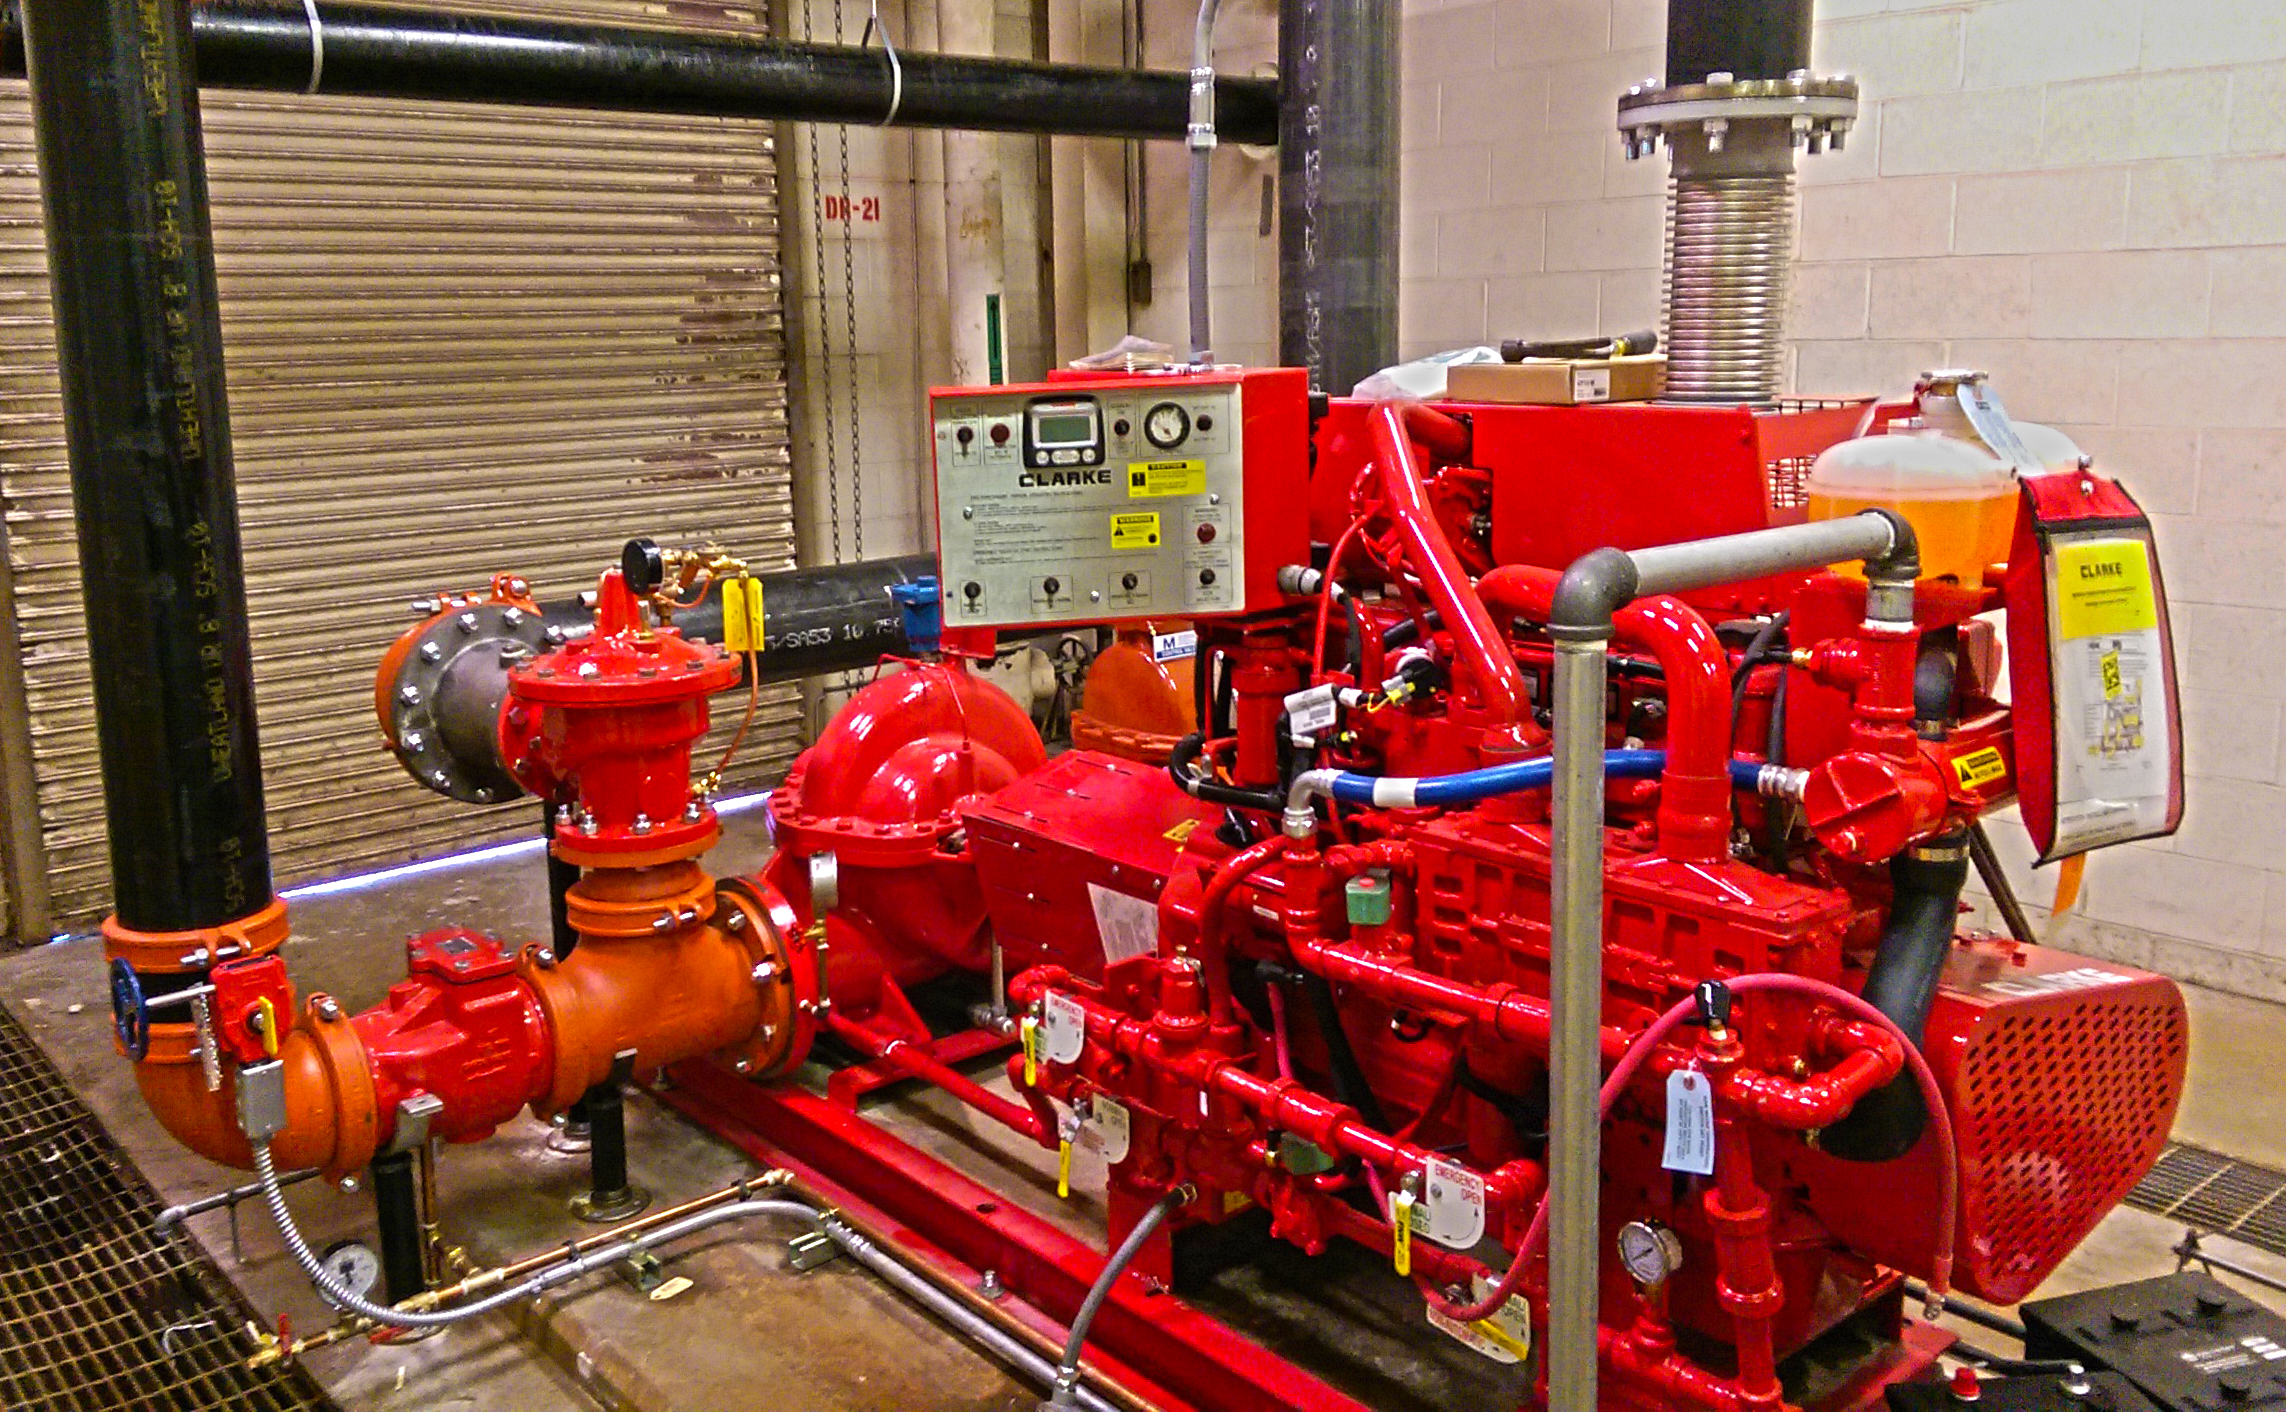 Learn more about Fire Protection here...